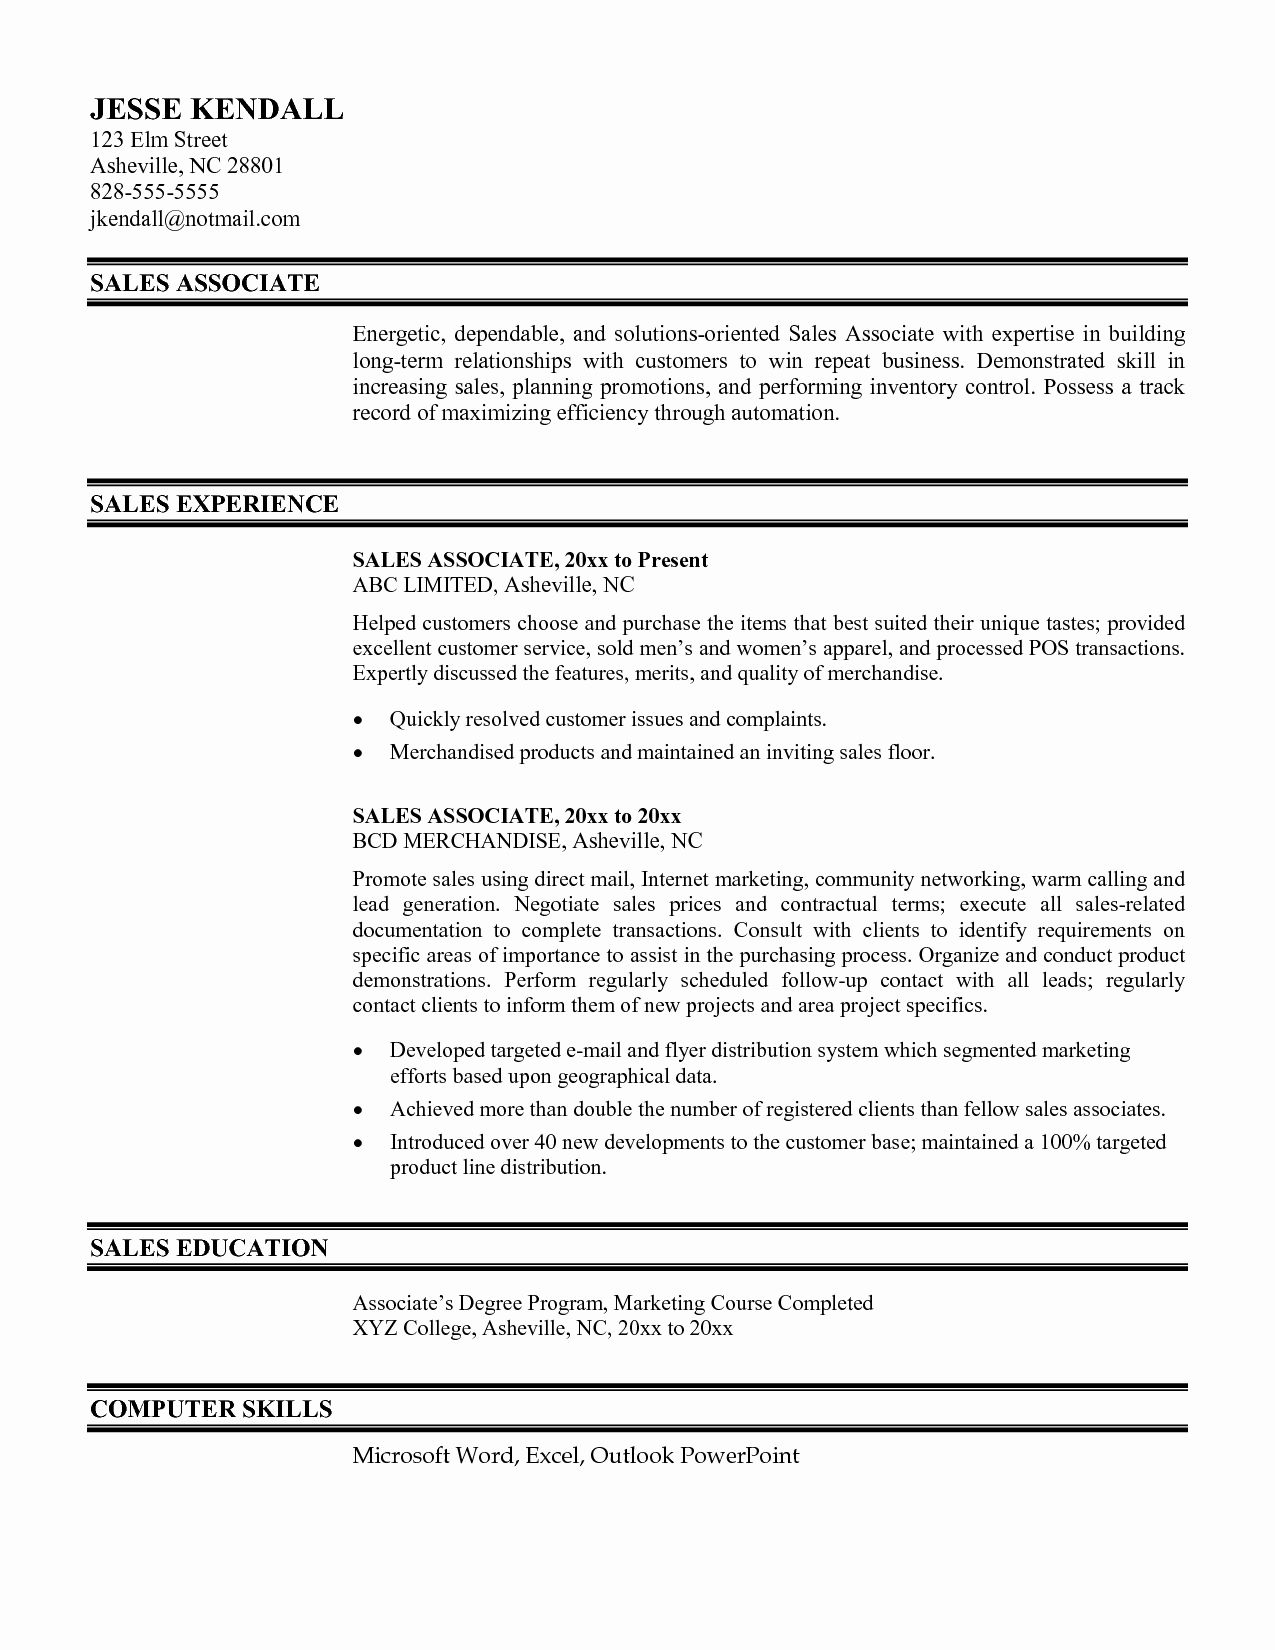 50 Inspirational Clothing Sales associate Resume in 2020